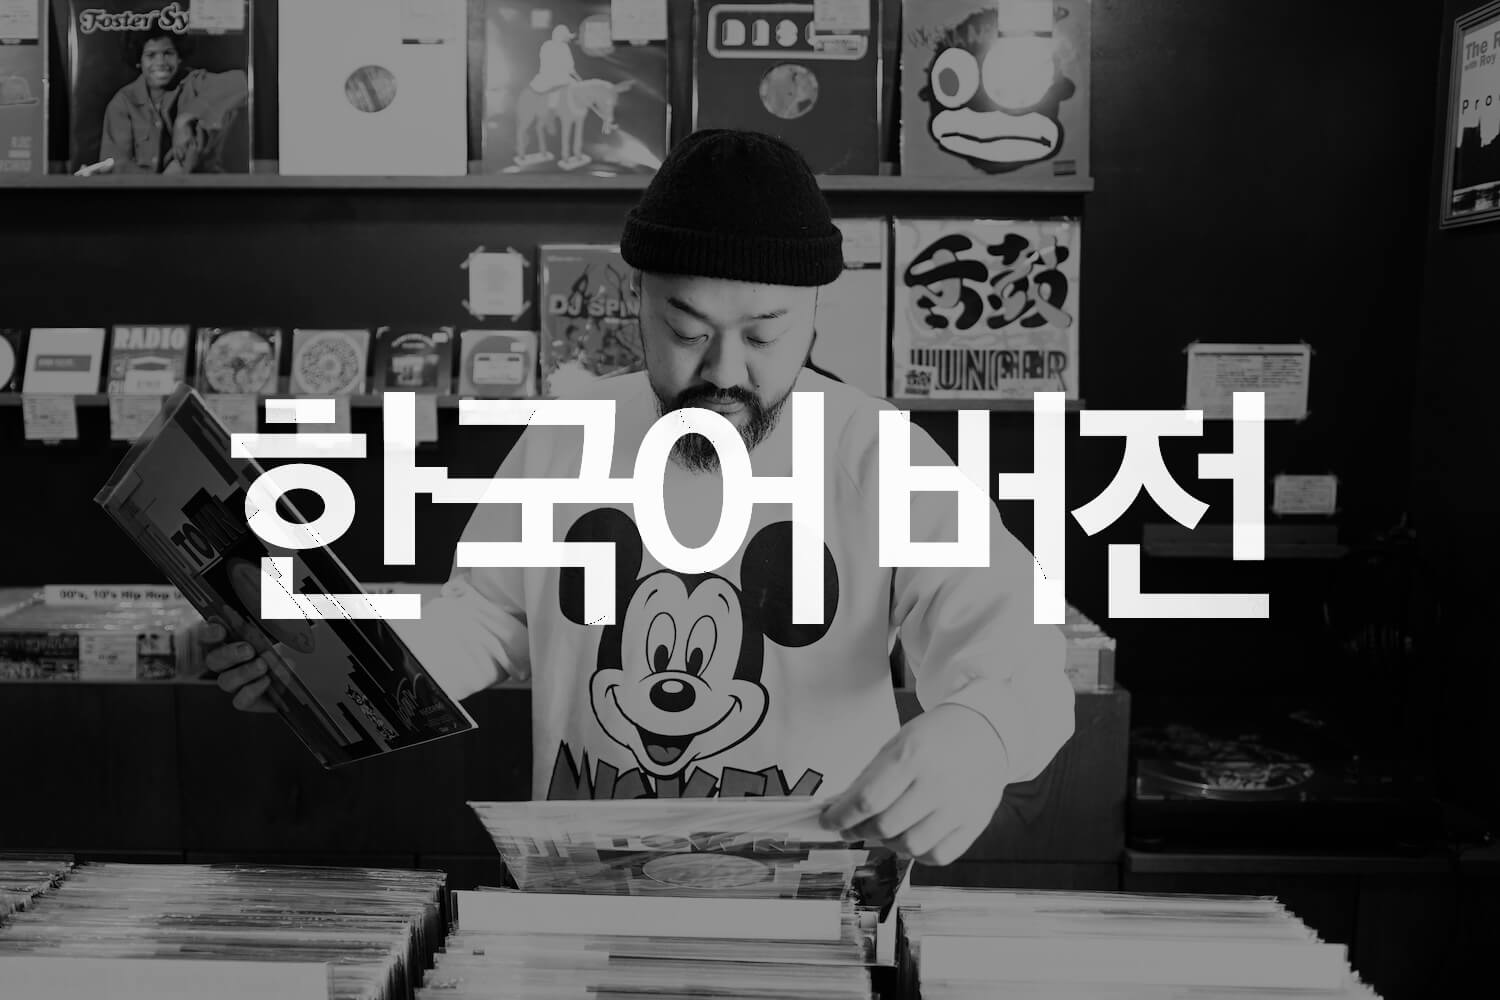 Talk About The Dope Sounds. #03 grooveman Spotの日日是好メロディ。韓国語Ver.